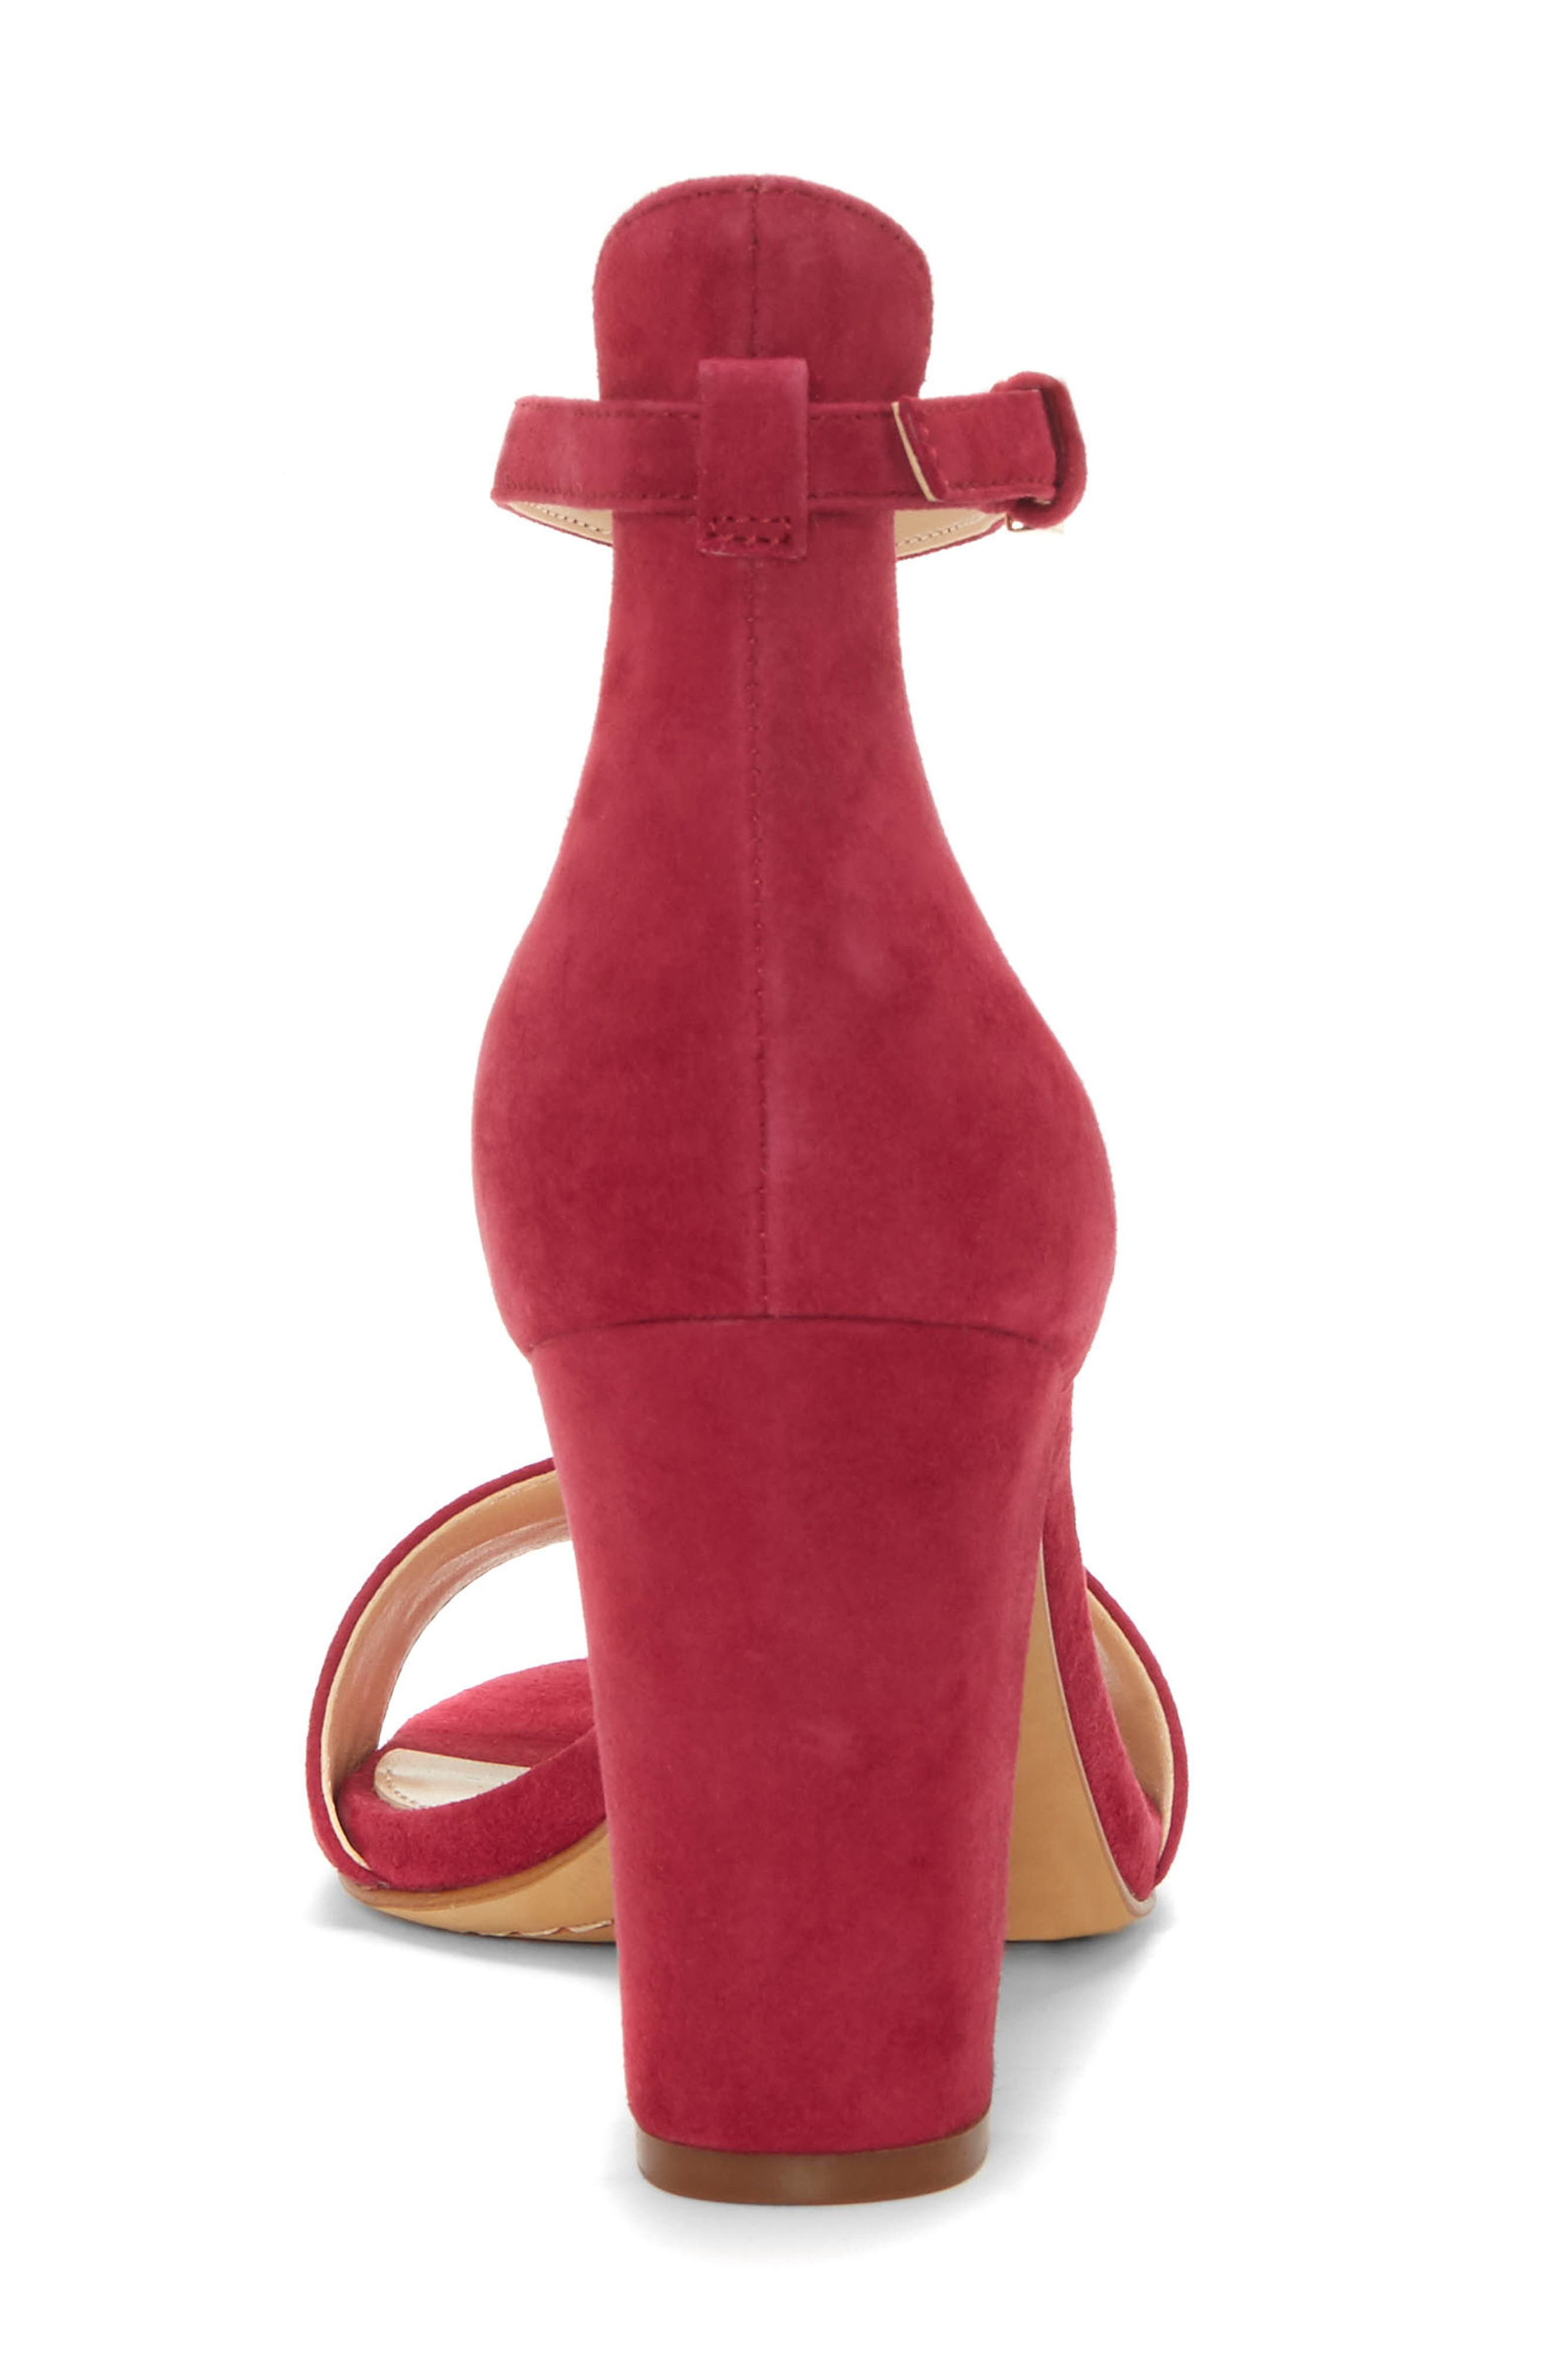 Corlina Ankle Strap Sandal,                             Alternate thumbnail 7, color,                             SWEET BERRY SUEDE